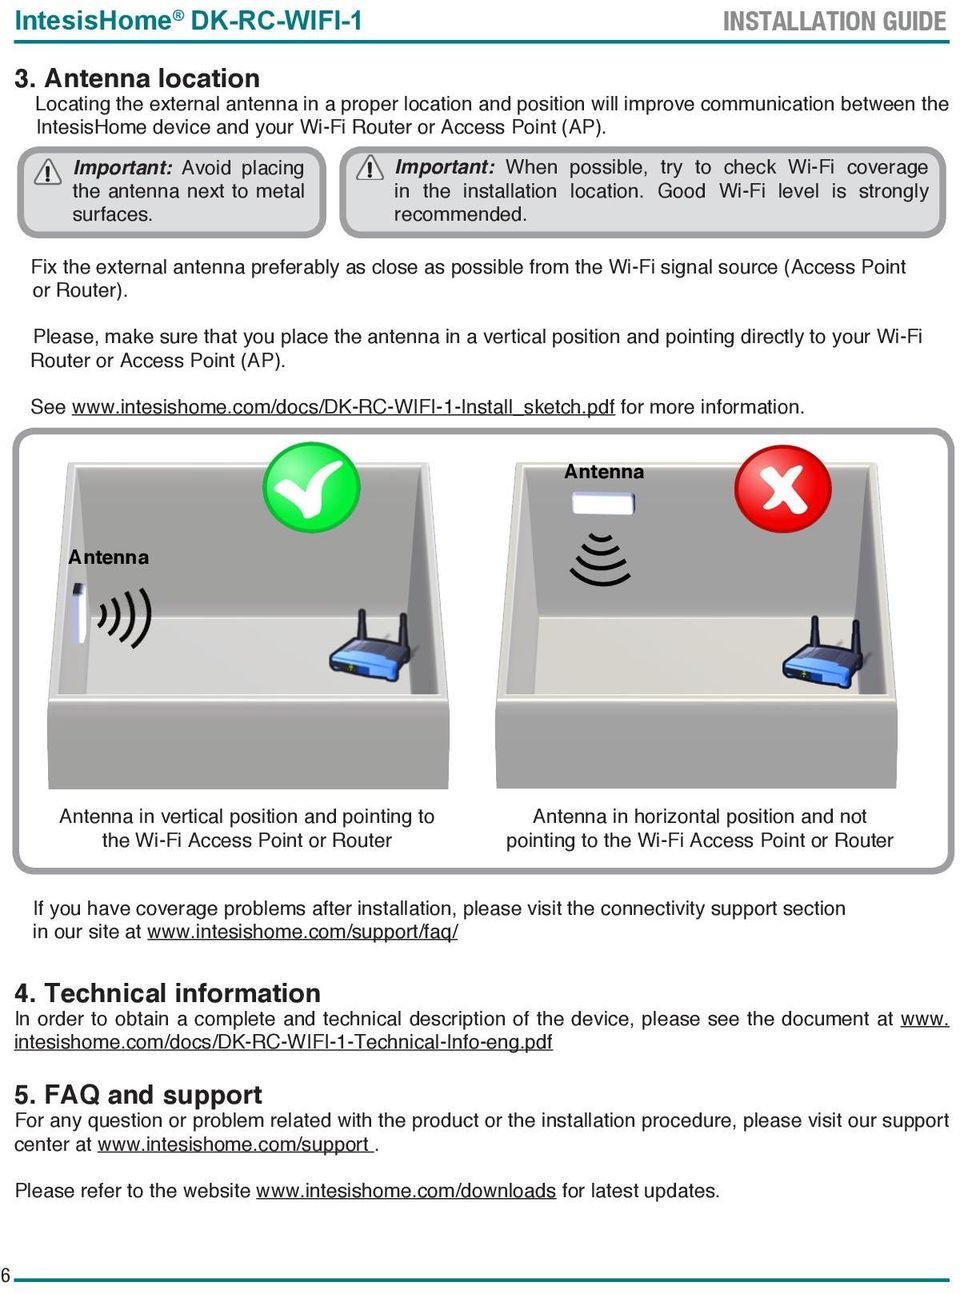 Important: Avoid placing the antenna next to metal surfaces. Important: When possible, try to check Wi-Fi coverage in the installation location. Good Wi-Fi level is strongly recommended.